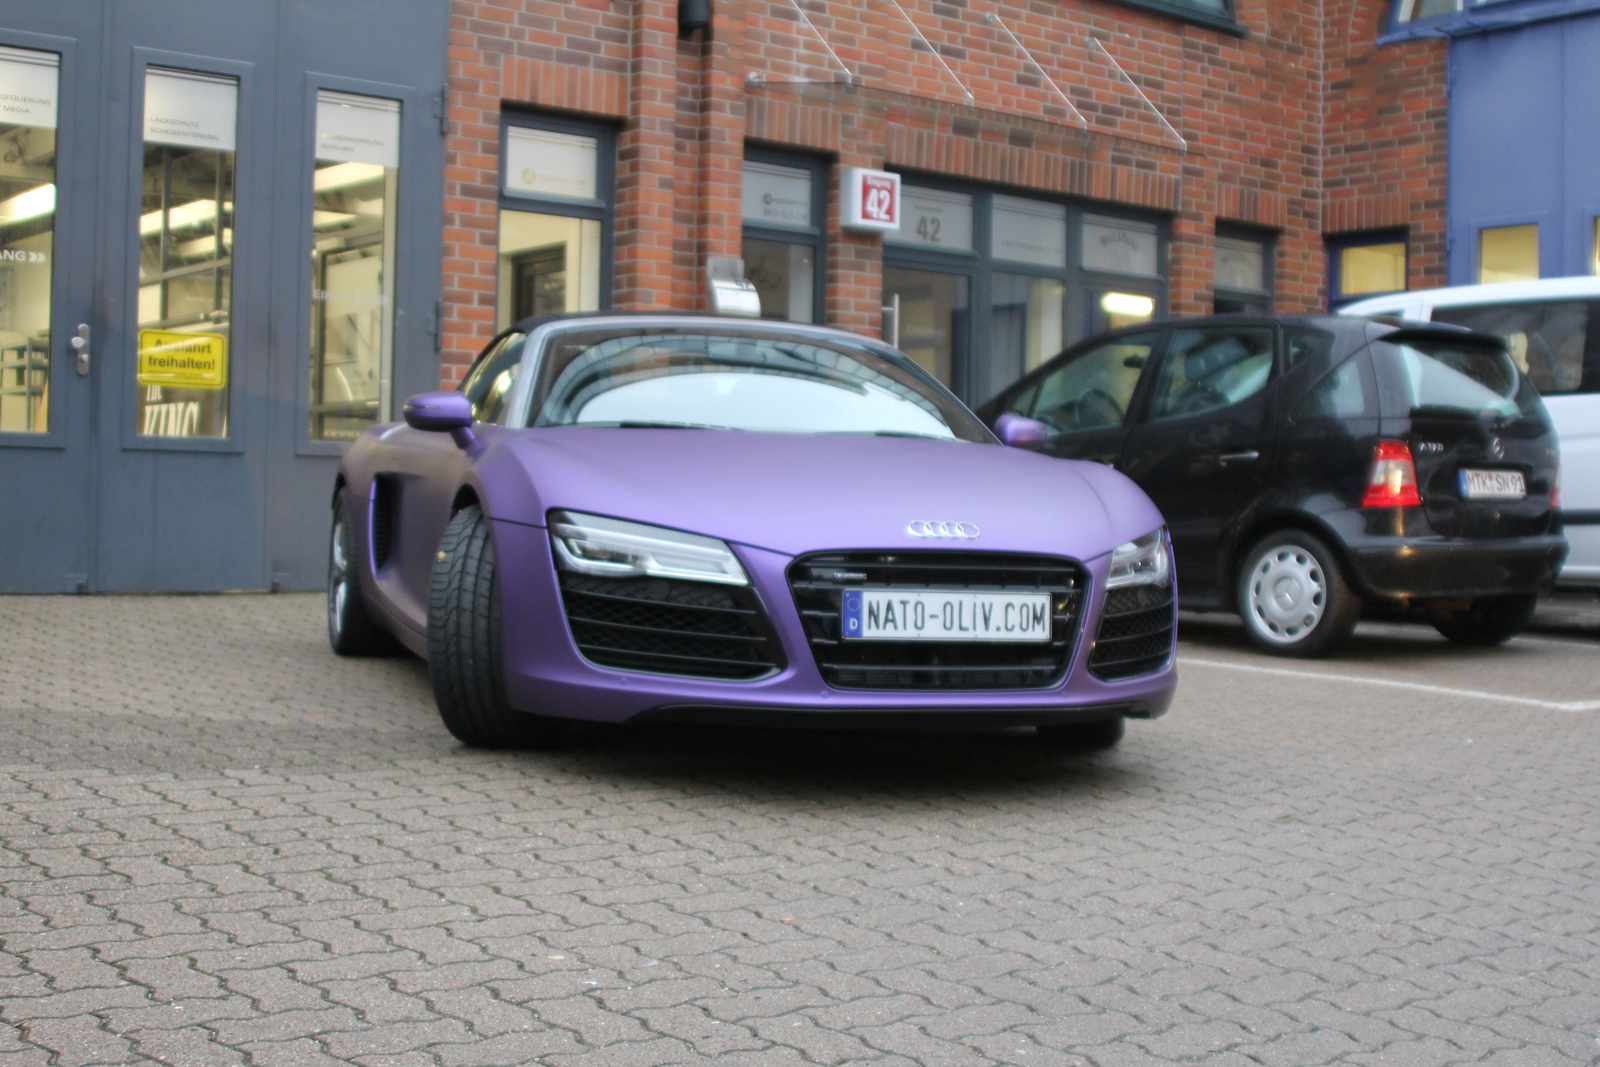 AUDI_R8_PURPLE_MATT_METALLIC_CAR-WRAPPING_04